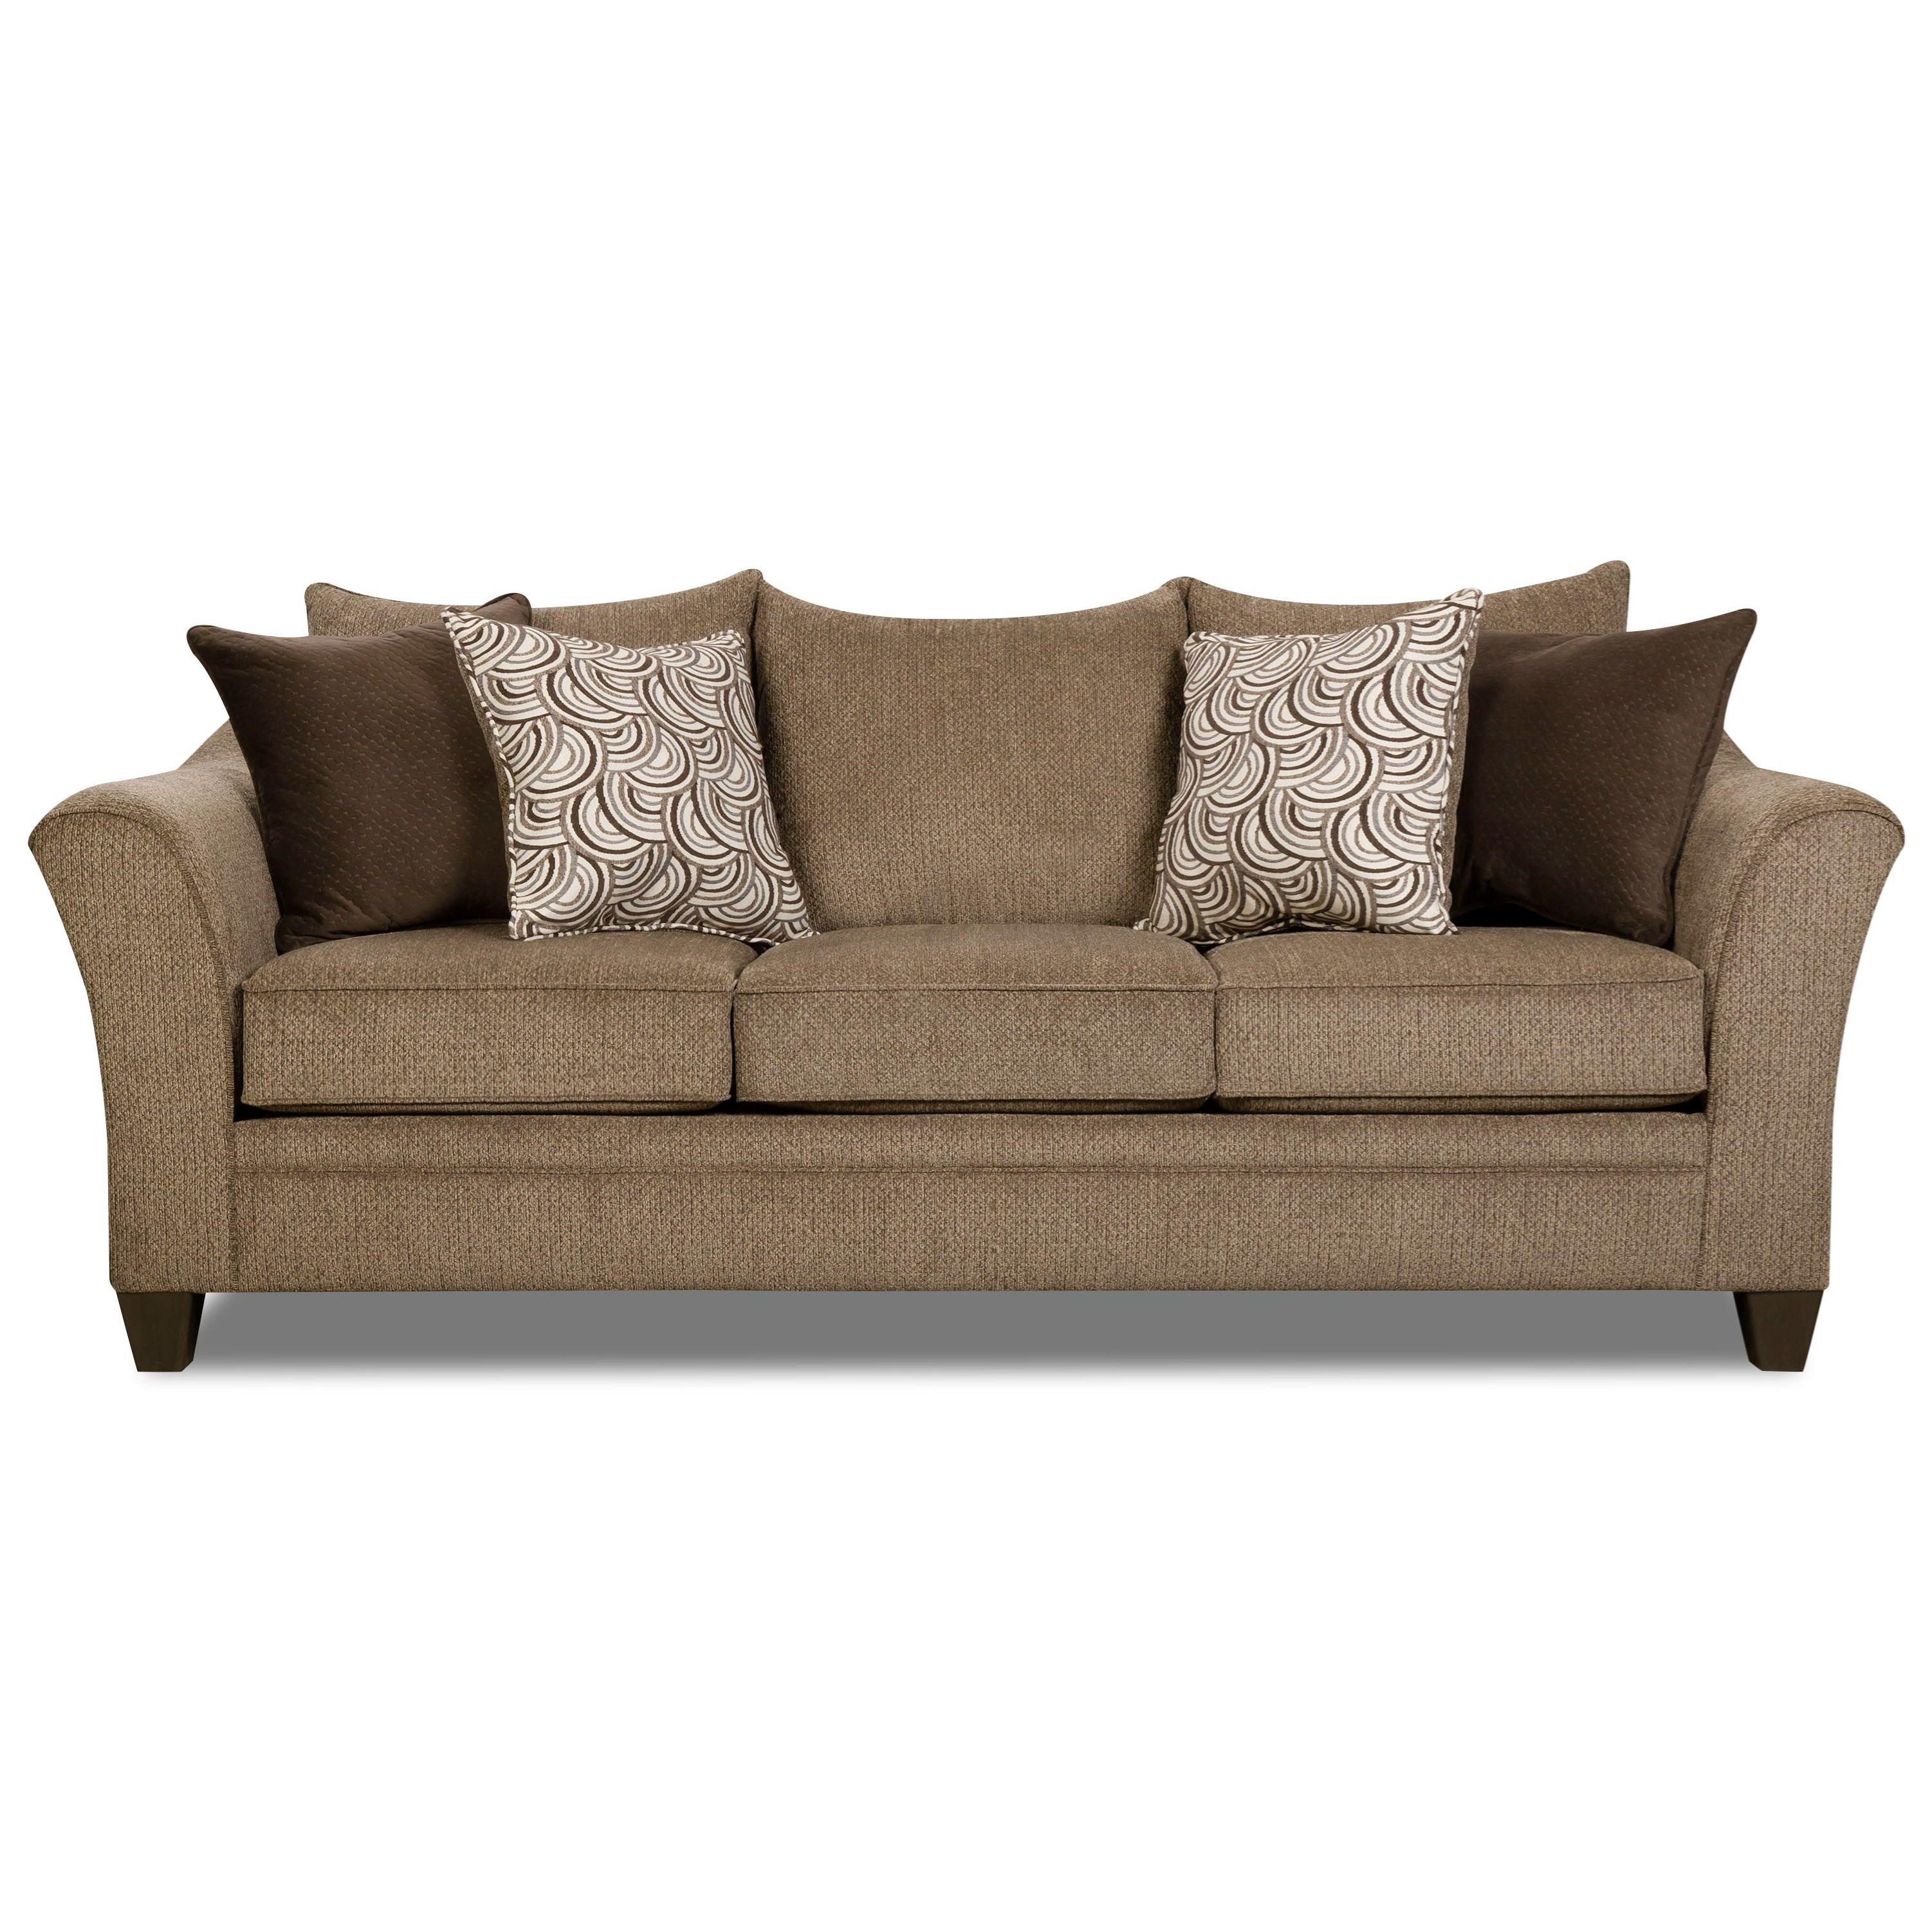 Kiara Transitional Sofa by Umber at EFO Furniture Outlet